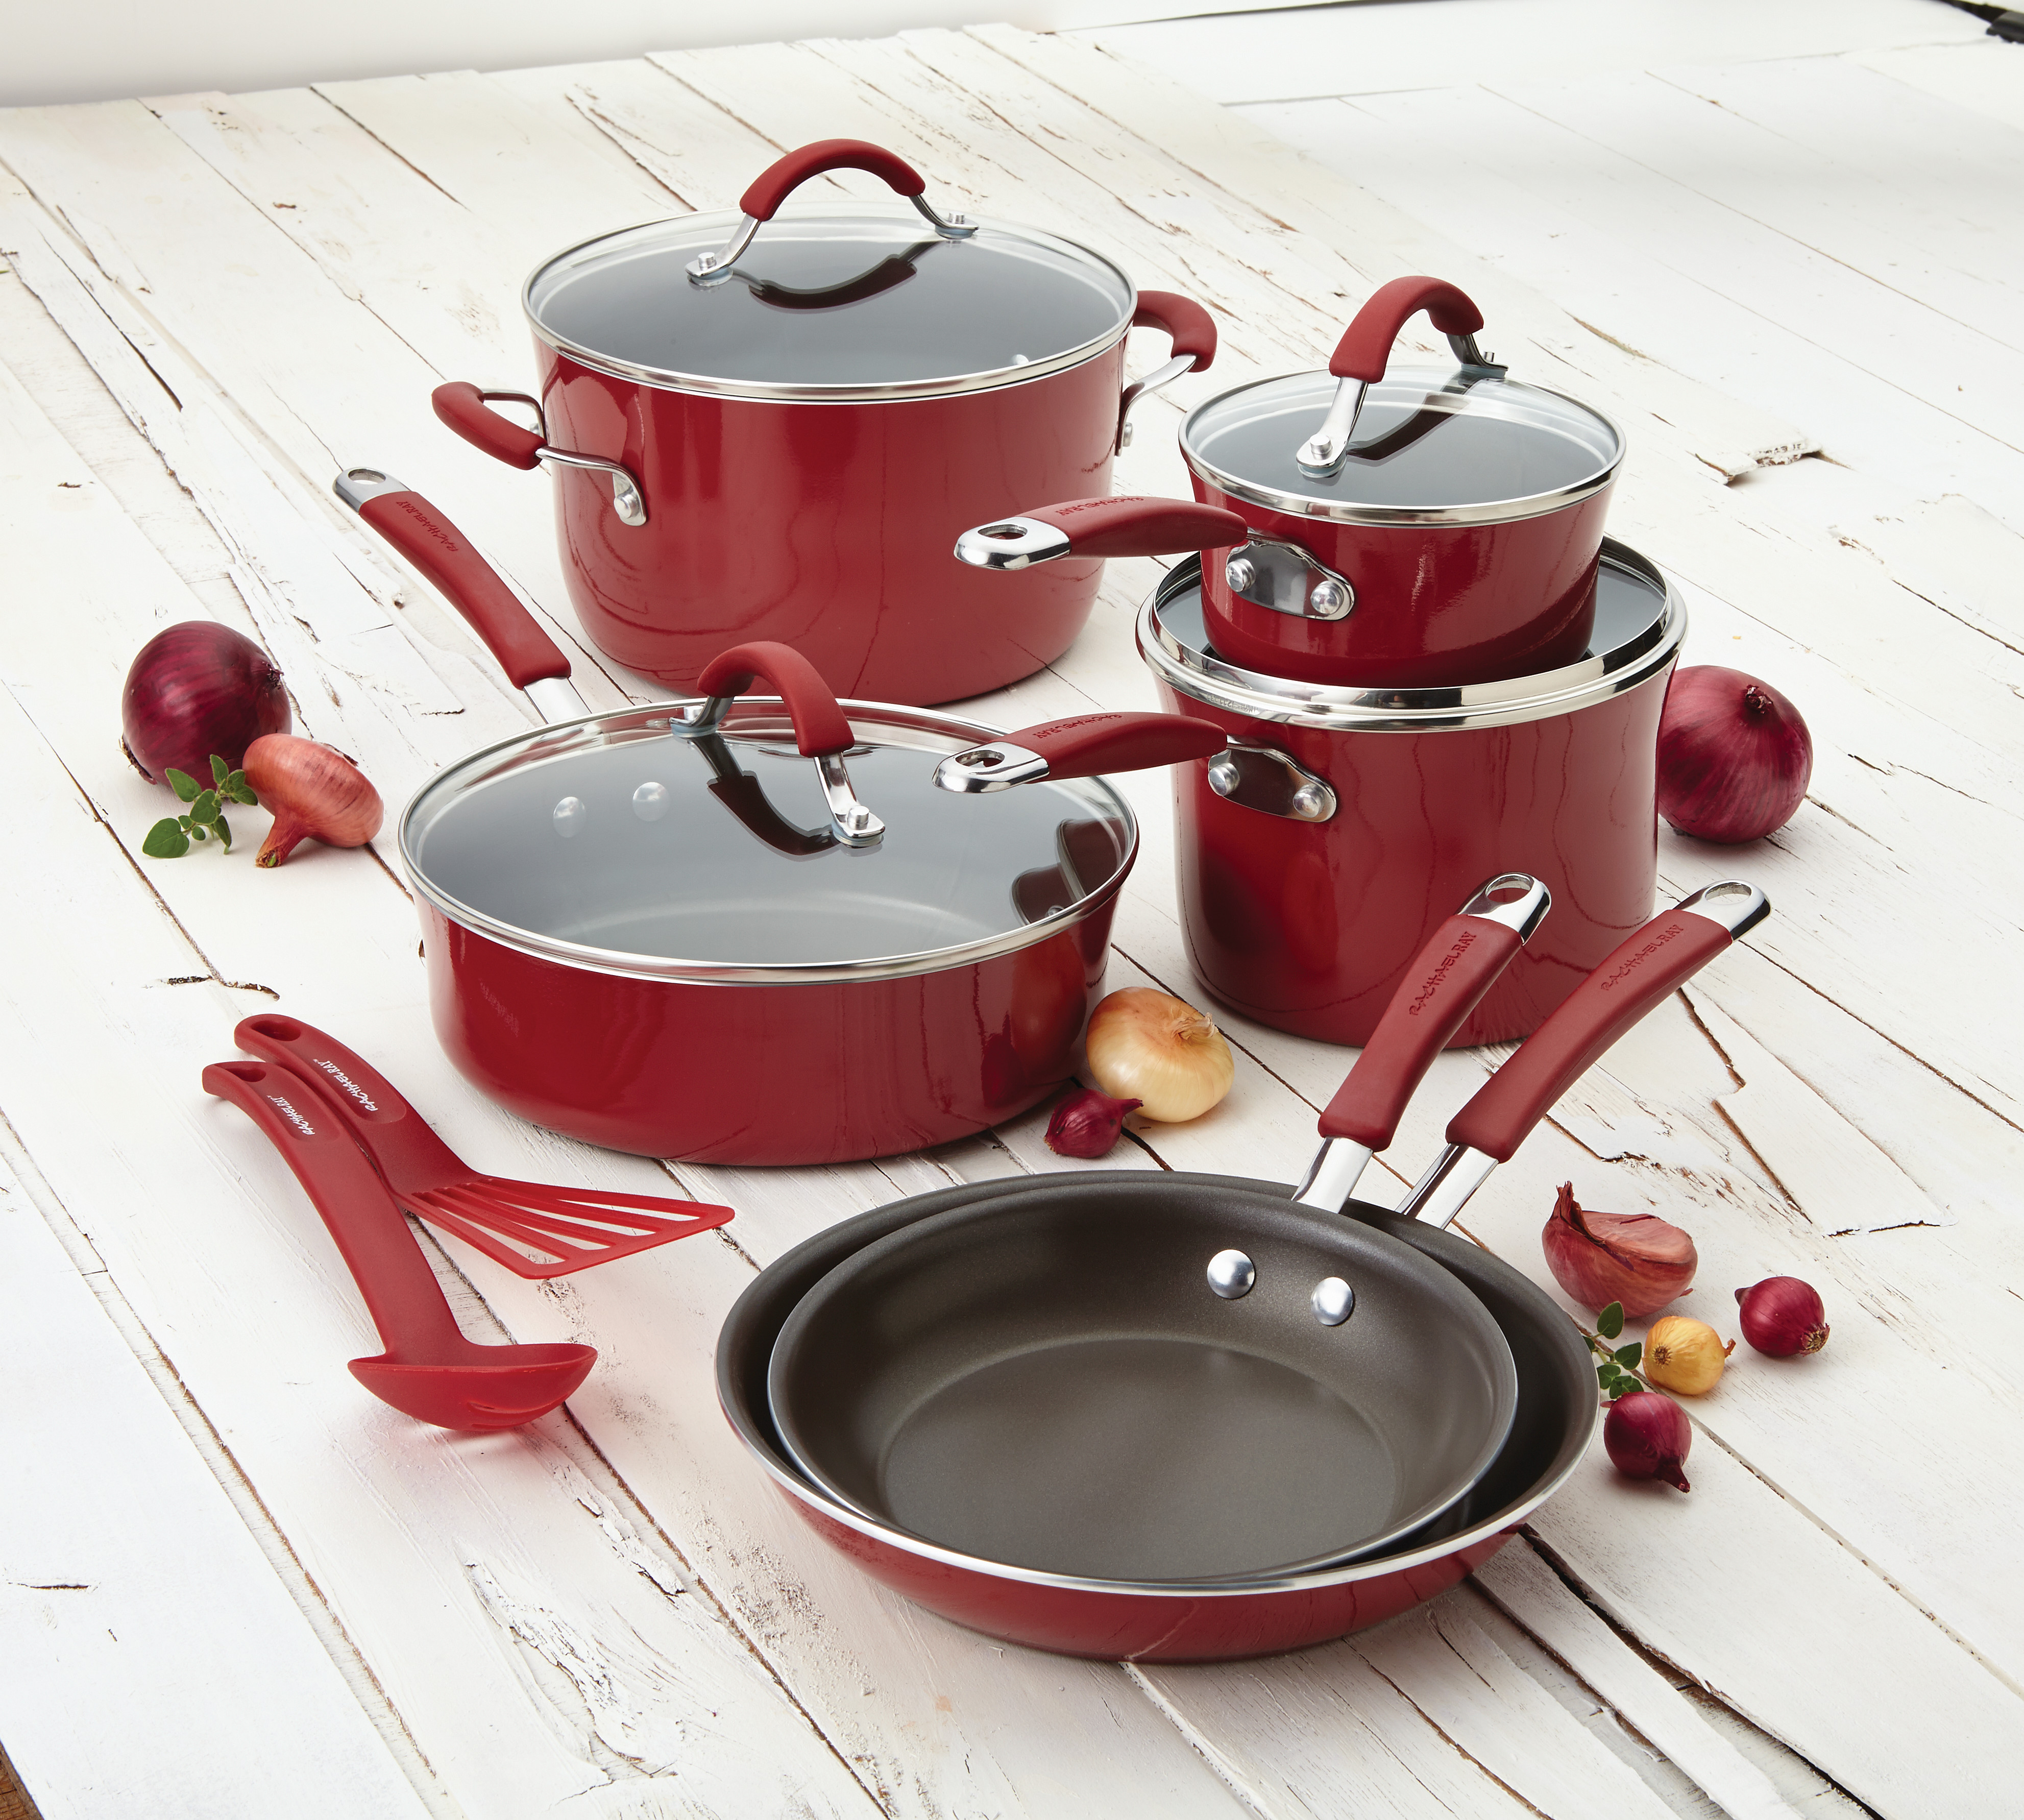 Rachael Ray CUCINA Hard Enamel Nonstick 12-piece Cookware Set | eBay